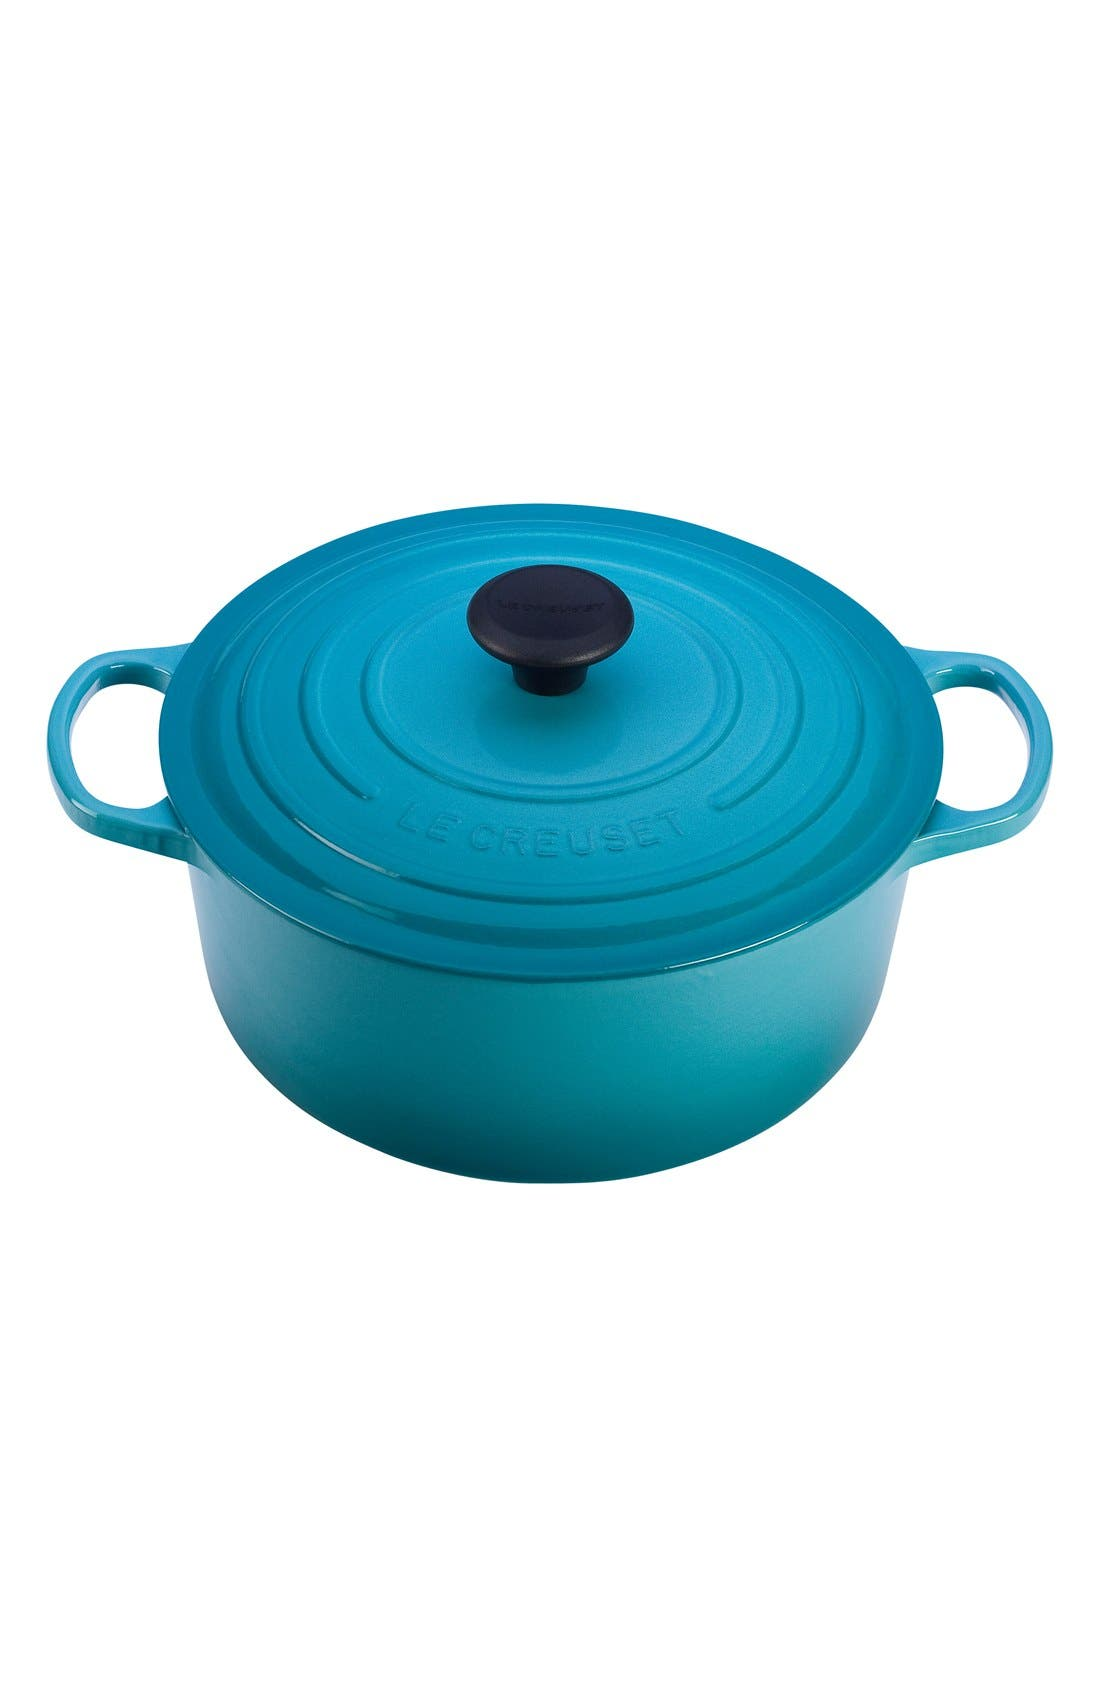 Signature 7 1/4 Quart Round Enamel Cast Iron French/Dutch Oven,                         Main,                         color, Caribbean